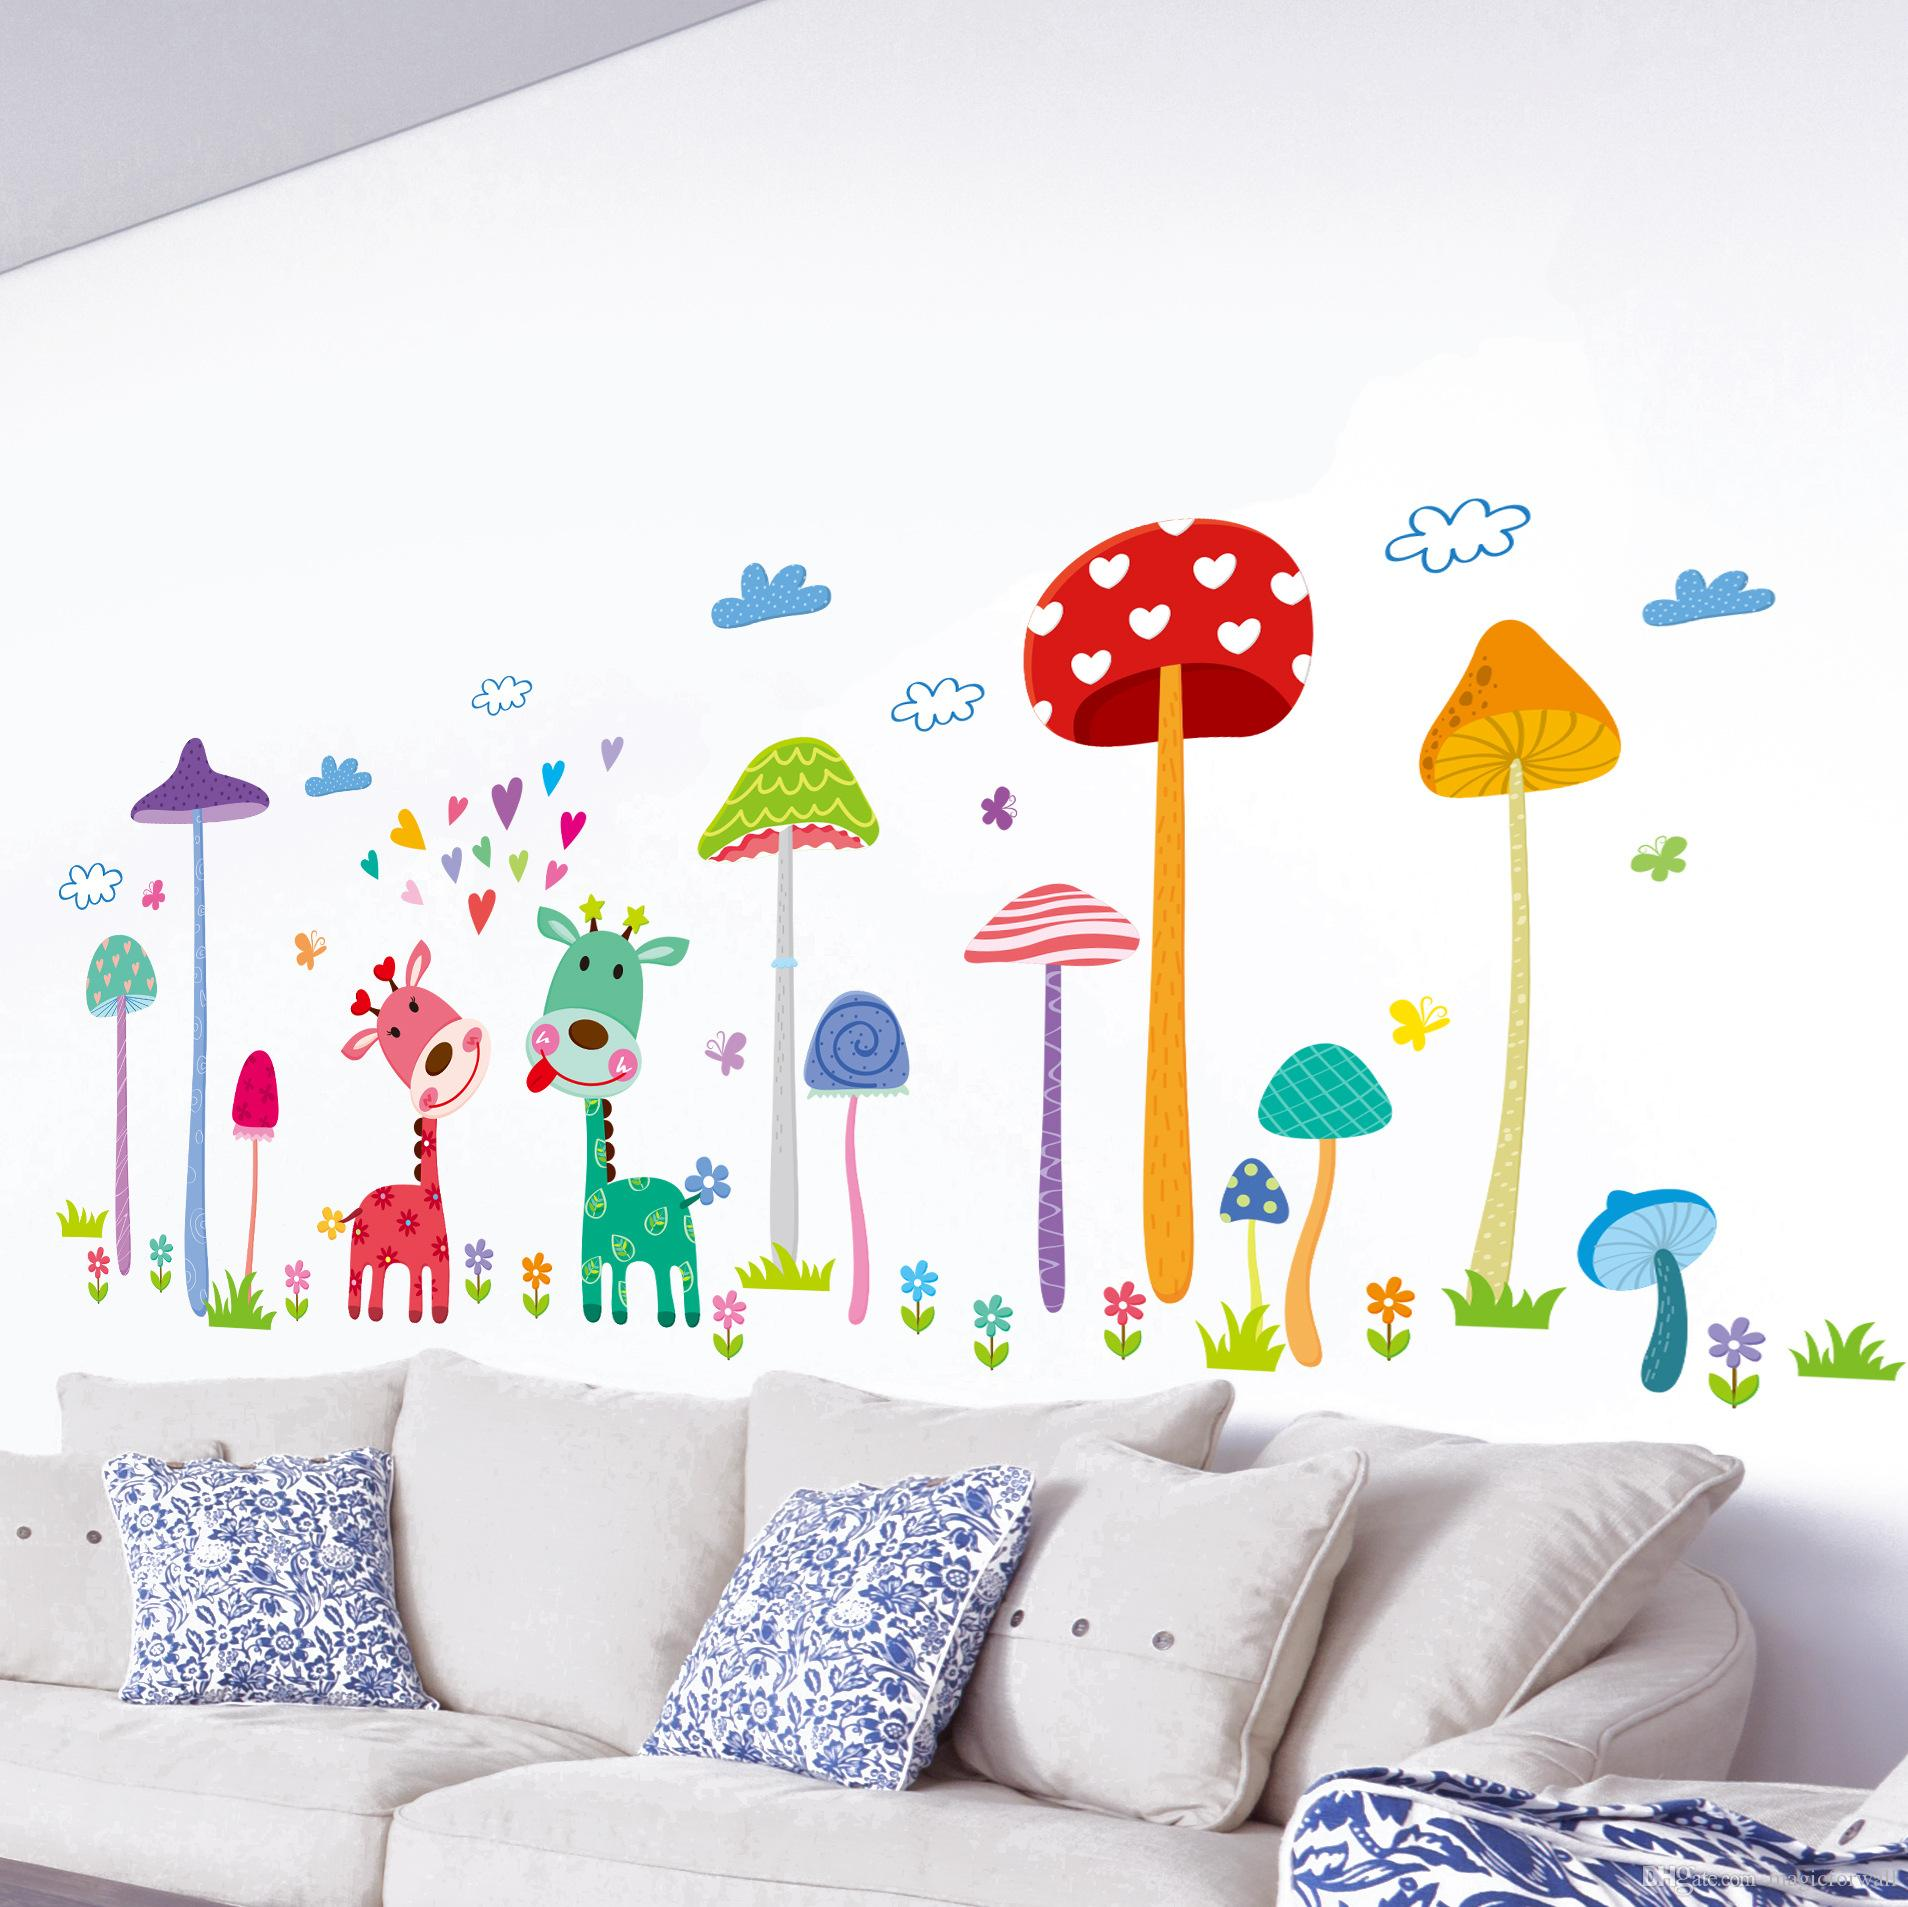 Forest Mushroom Deer Animals Home Wall Art Mural Decor Kids Babies Room  Nursery Wallpaper Decoration Decal Lovely Animals Family Art Decor Unique  Wall ... Part 36